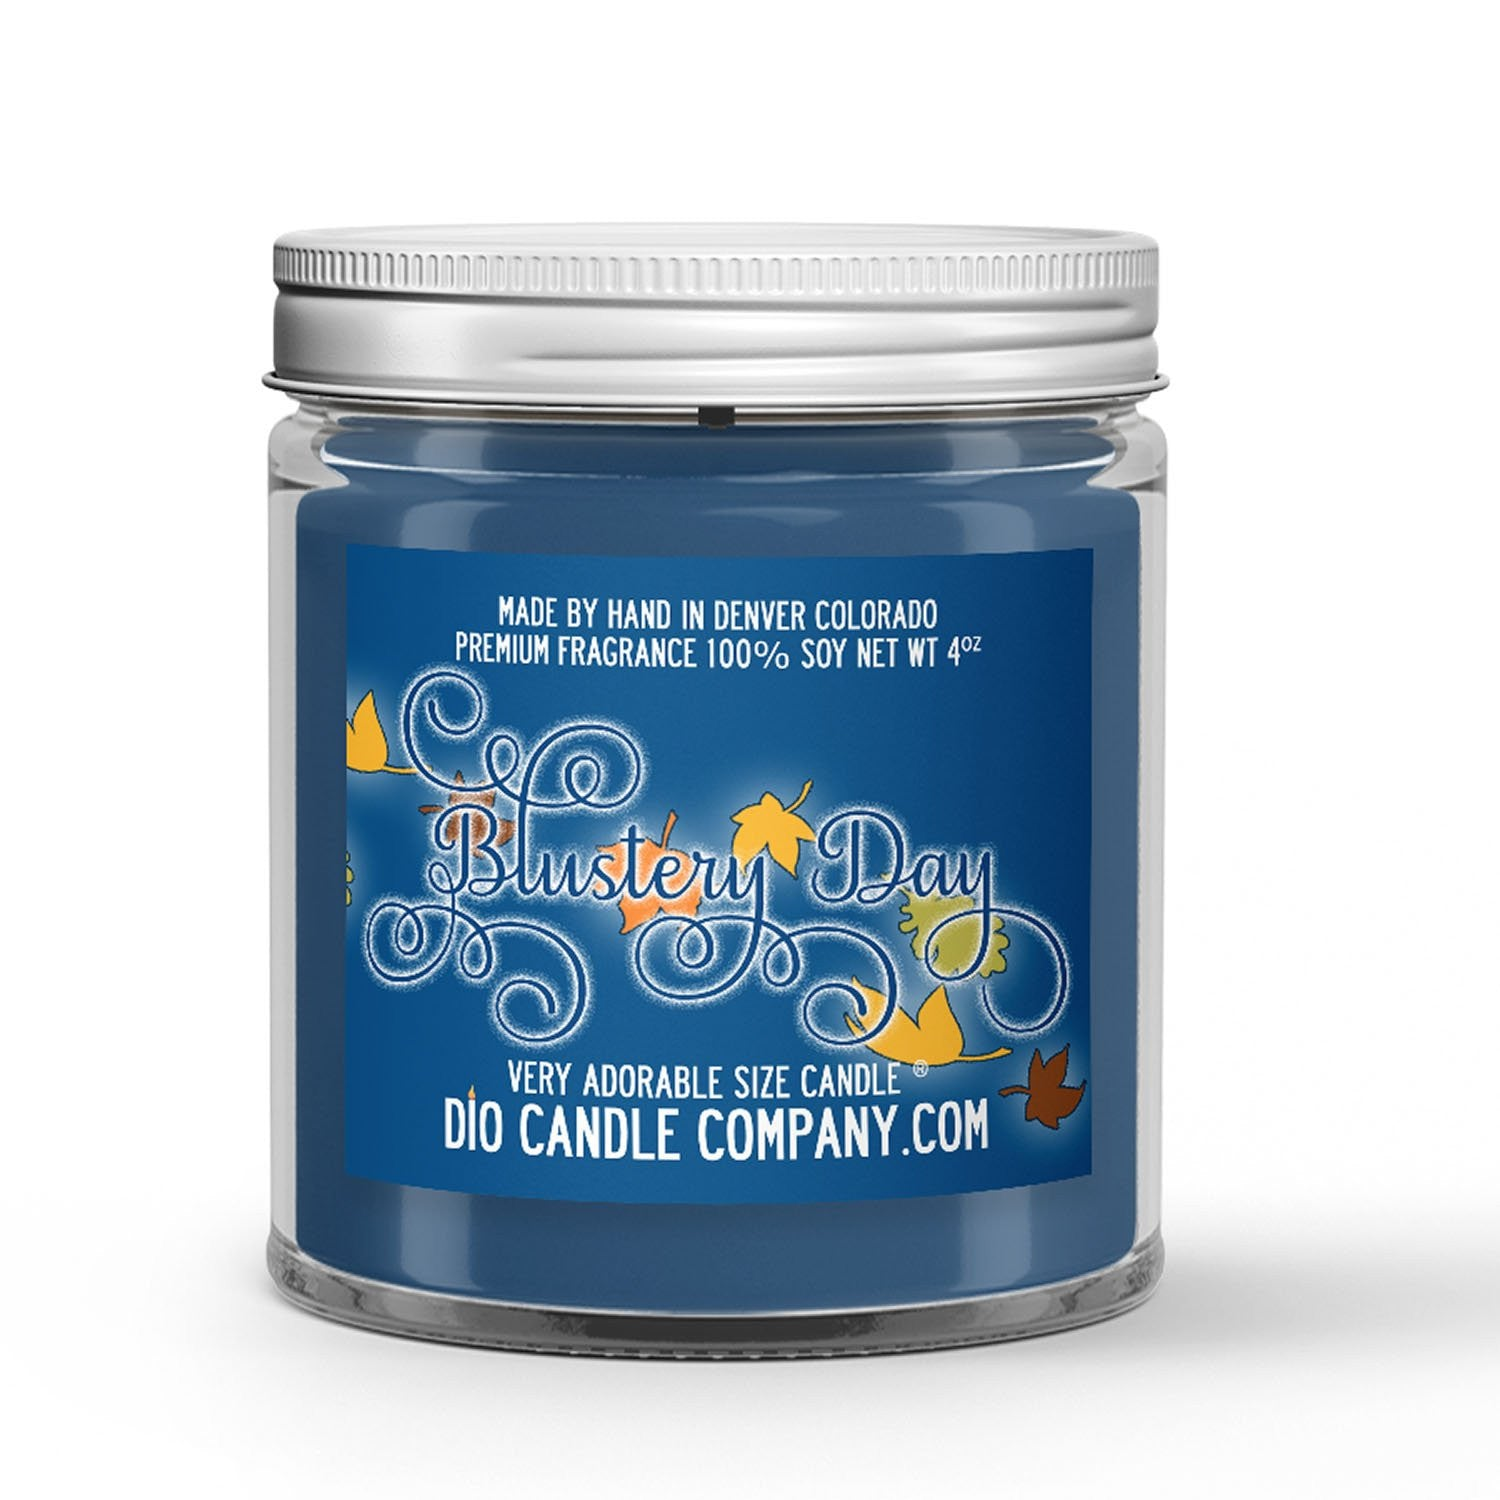 Blustery Day Candle - Dirt - Leaves - Rain - 4oz Very Adorable Size Candle® - Dio Candle Company